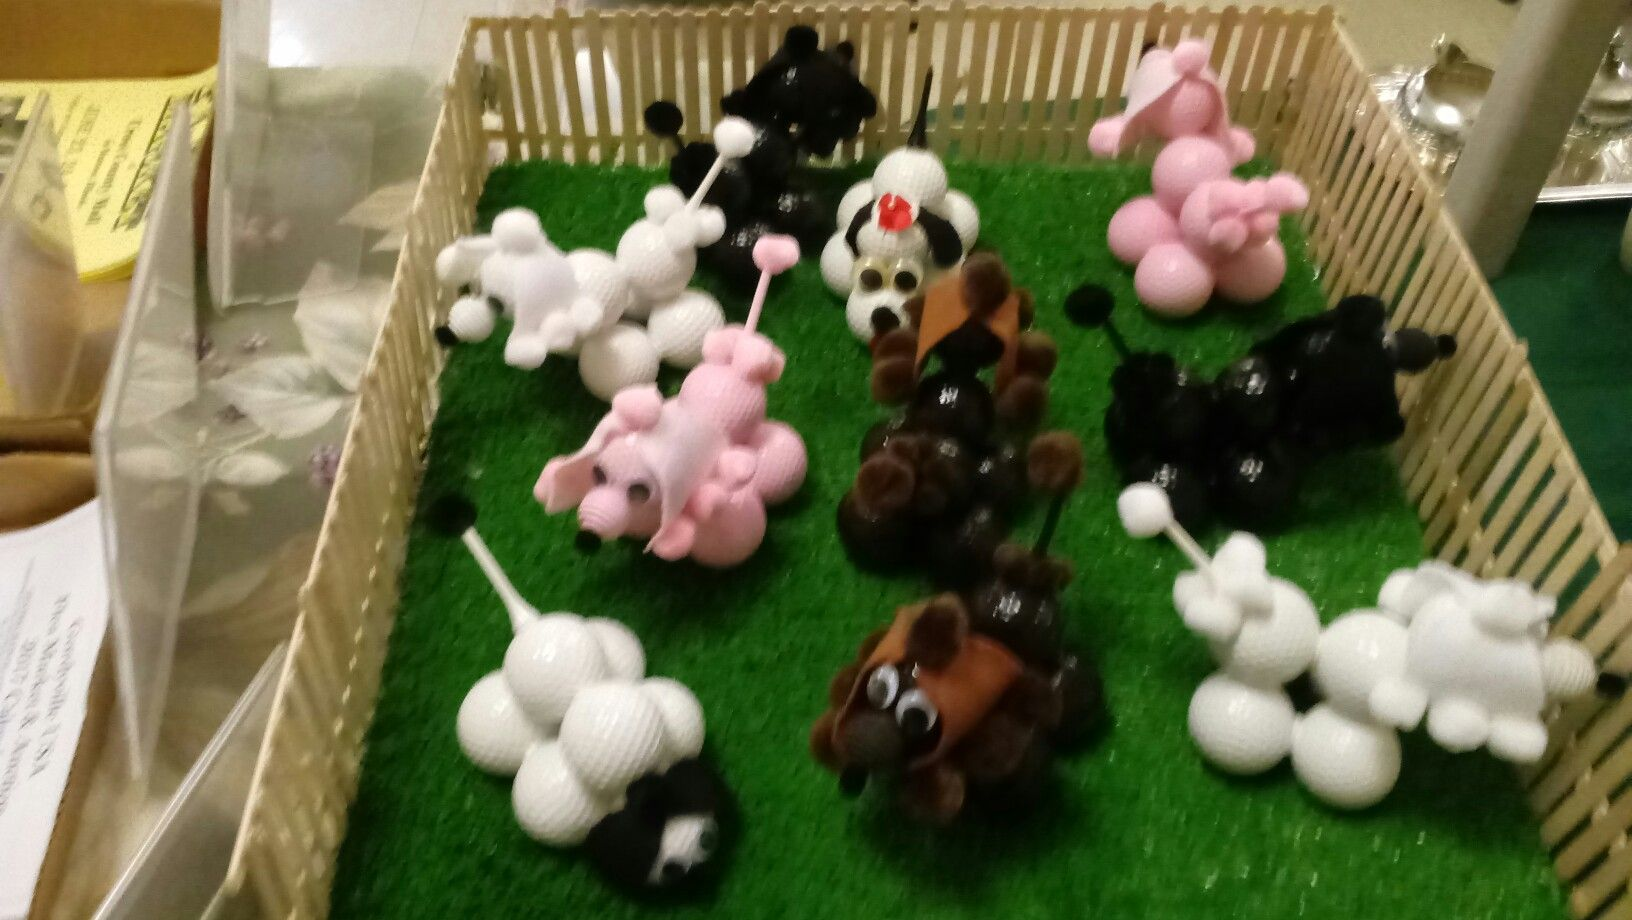 this is my dog park of golf ball poodles ,made of golf ball,mini pom pom ,paint,golf tees,hot glue.they sell for $10.00 each or three for $25.00 plus shipping if interested email me @  edward.west805@gmail.com